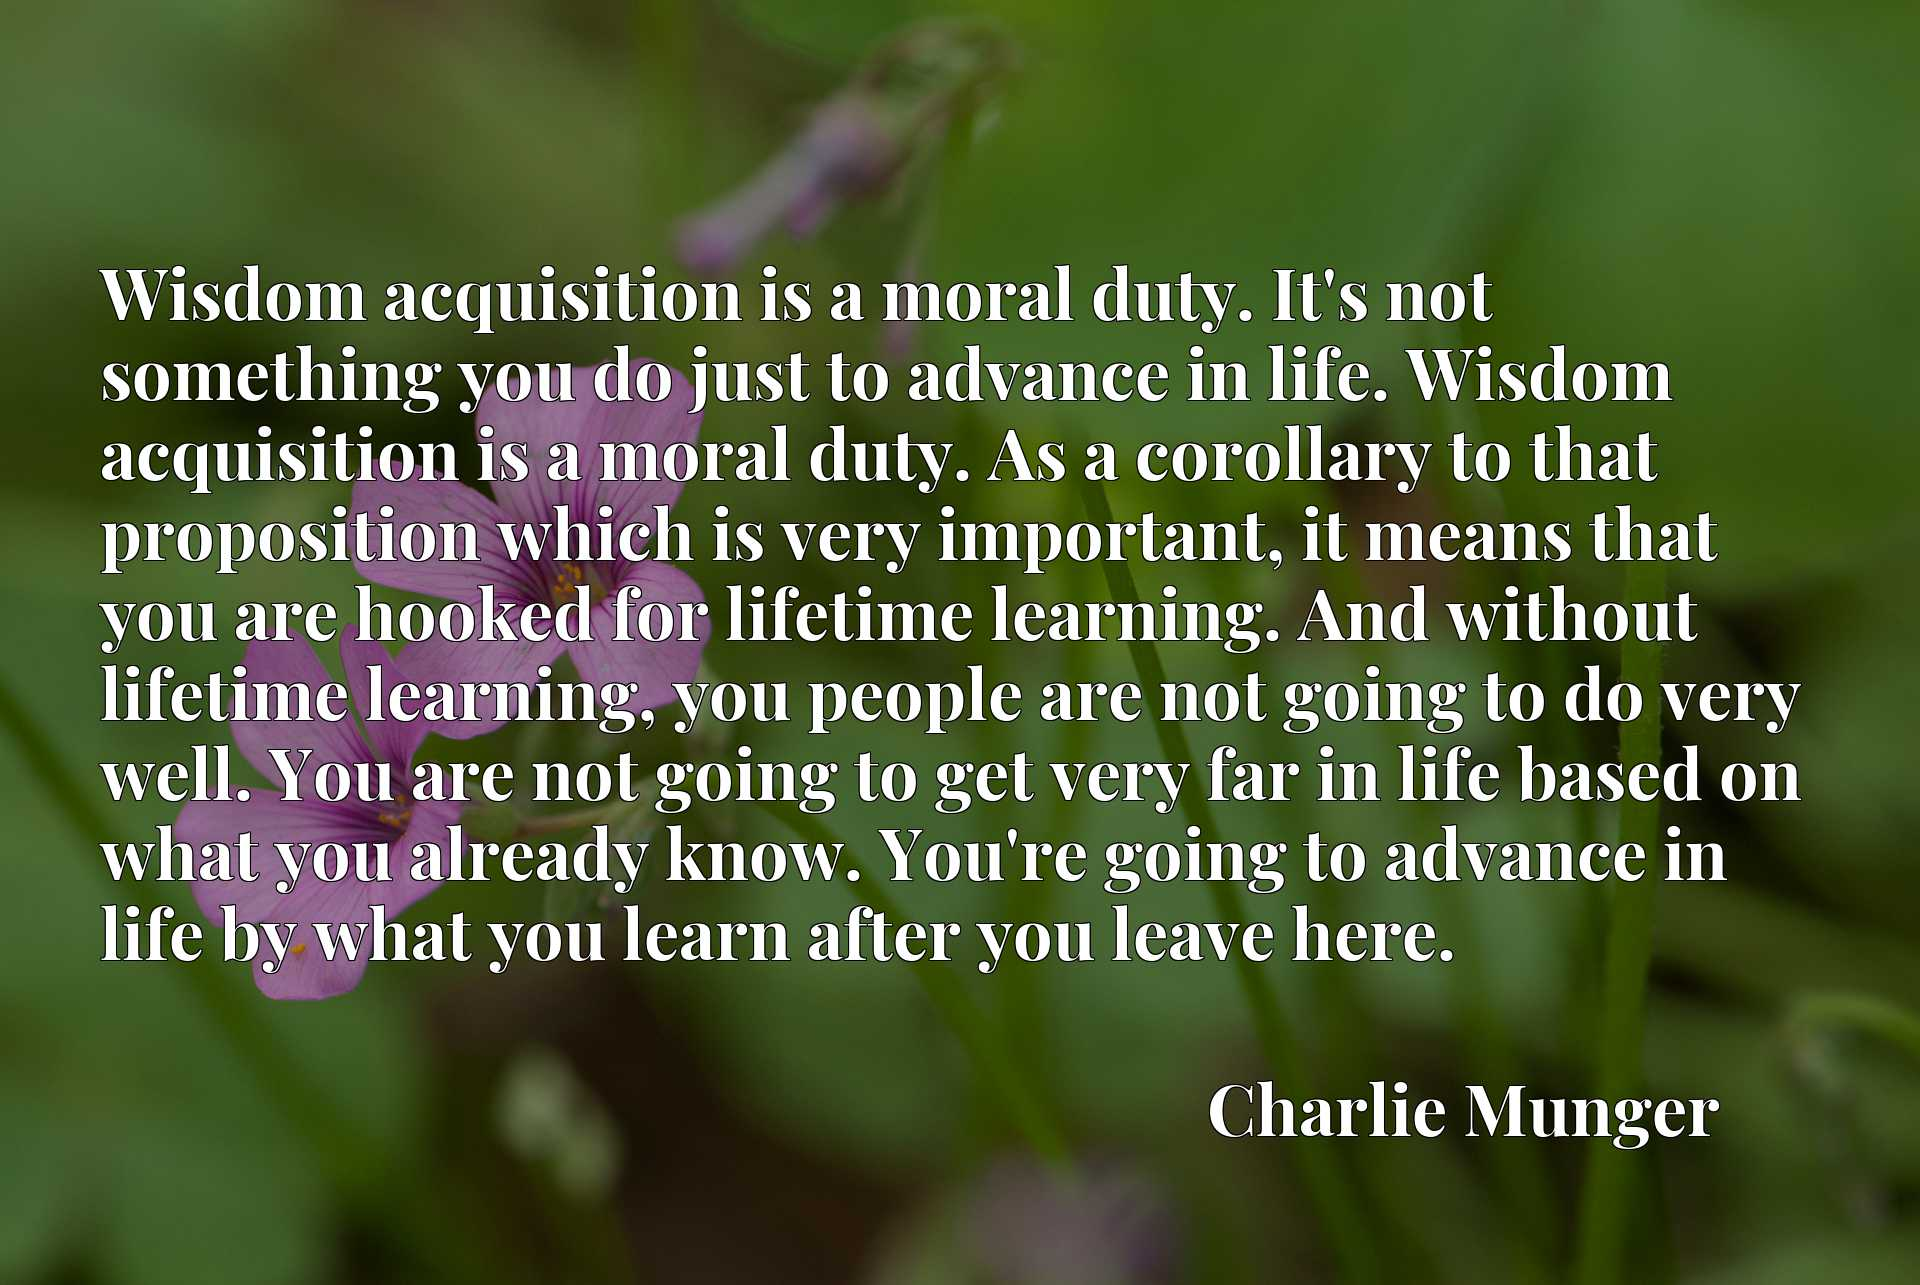 Wisdom acquisition is a moral duty. It's not something you do just to advance in life. Wisdom acquisition is a moral duty. As a corollary to that proposition which is very important, it means that you are hooked for lifetime learning. And without lifetime learning, you people are not going to do very well. You are not going to get very far in life based on what you already know. You're going to advance in life by what you learn after you leave here.